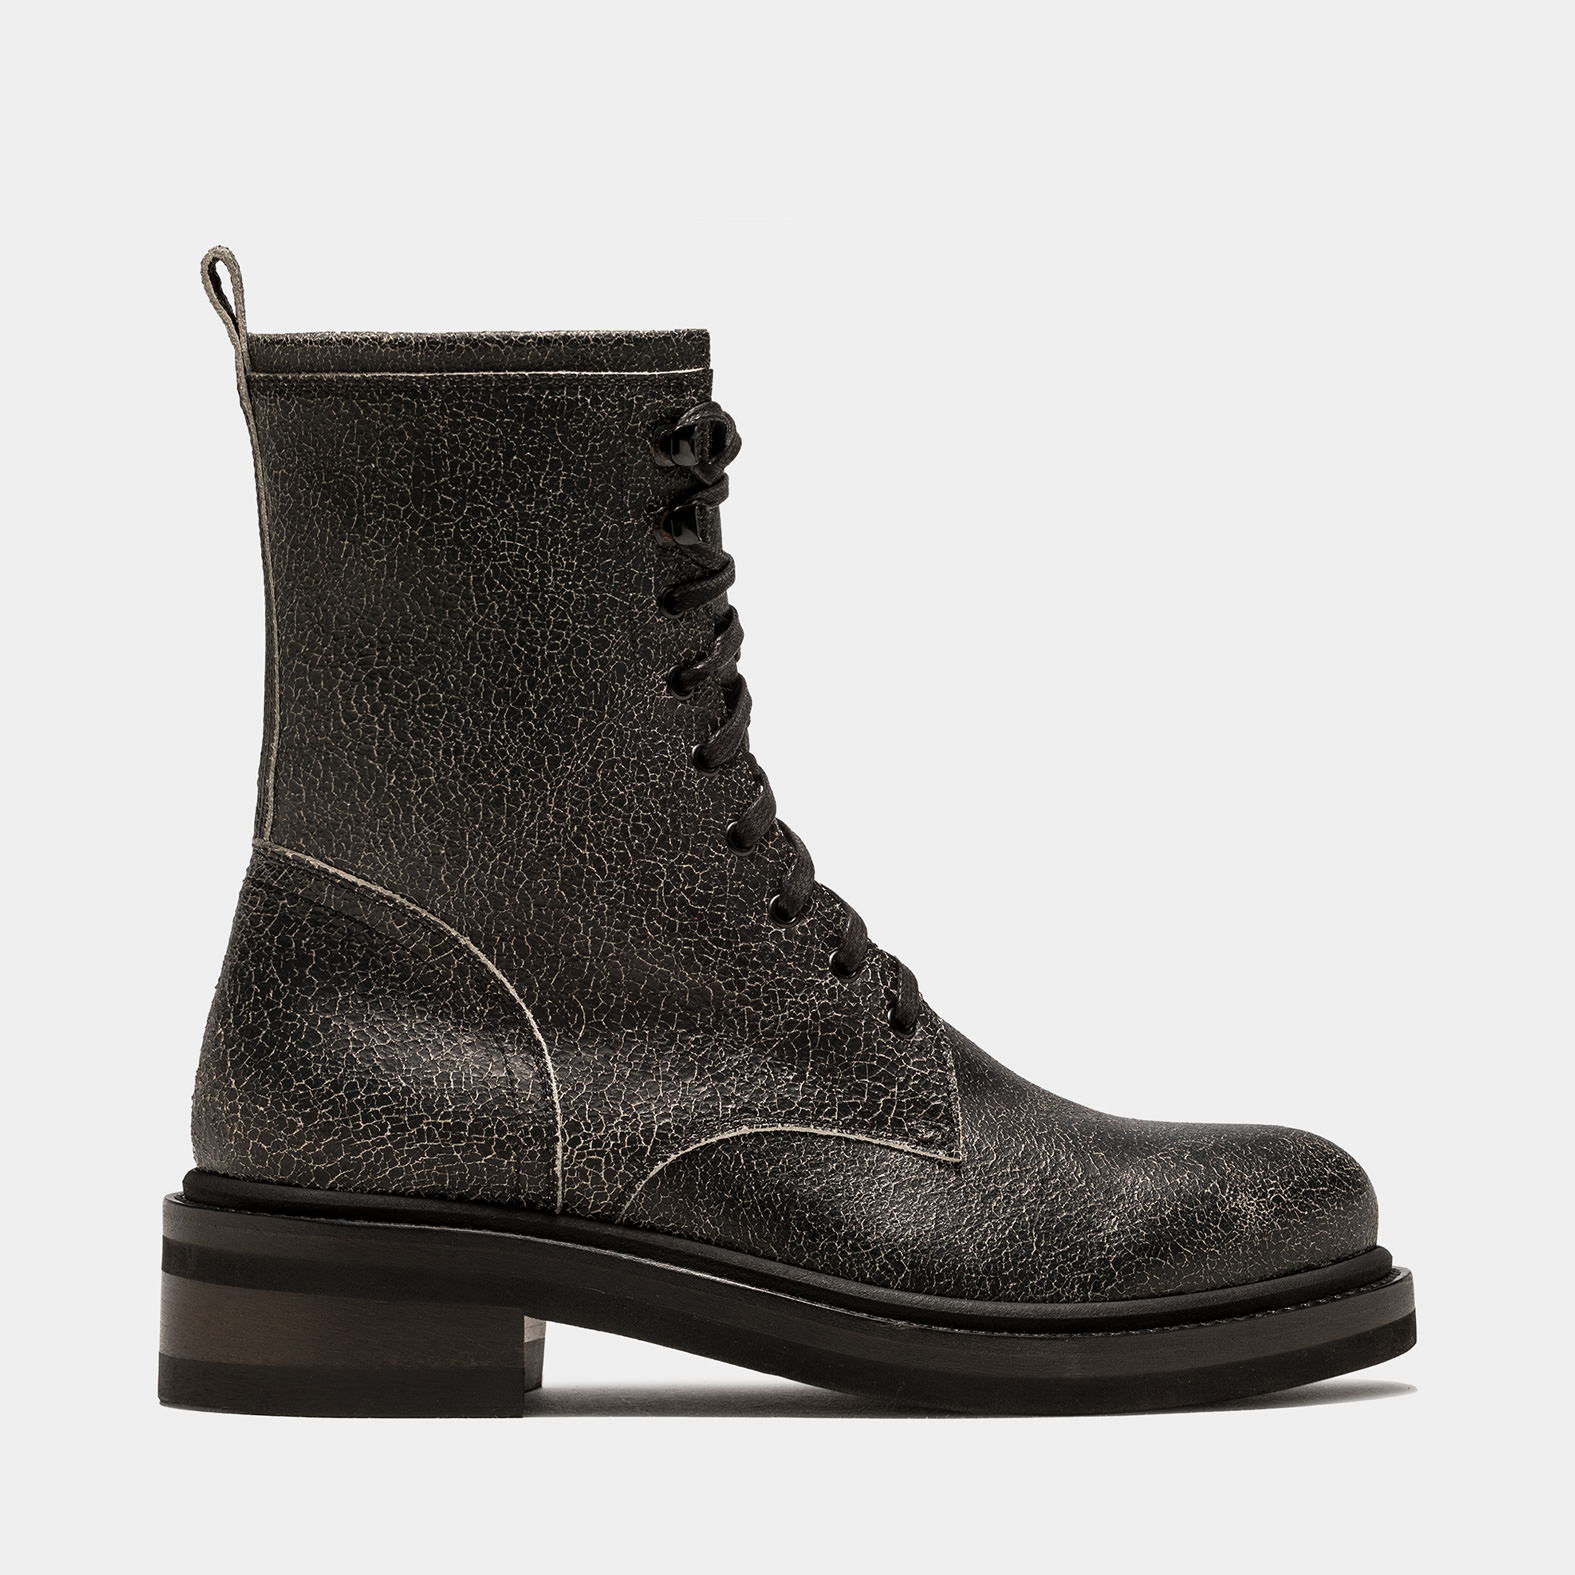 BUTTERO: LOW COMBAT BOOT IN BLACK CRAQUELE LEATHER